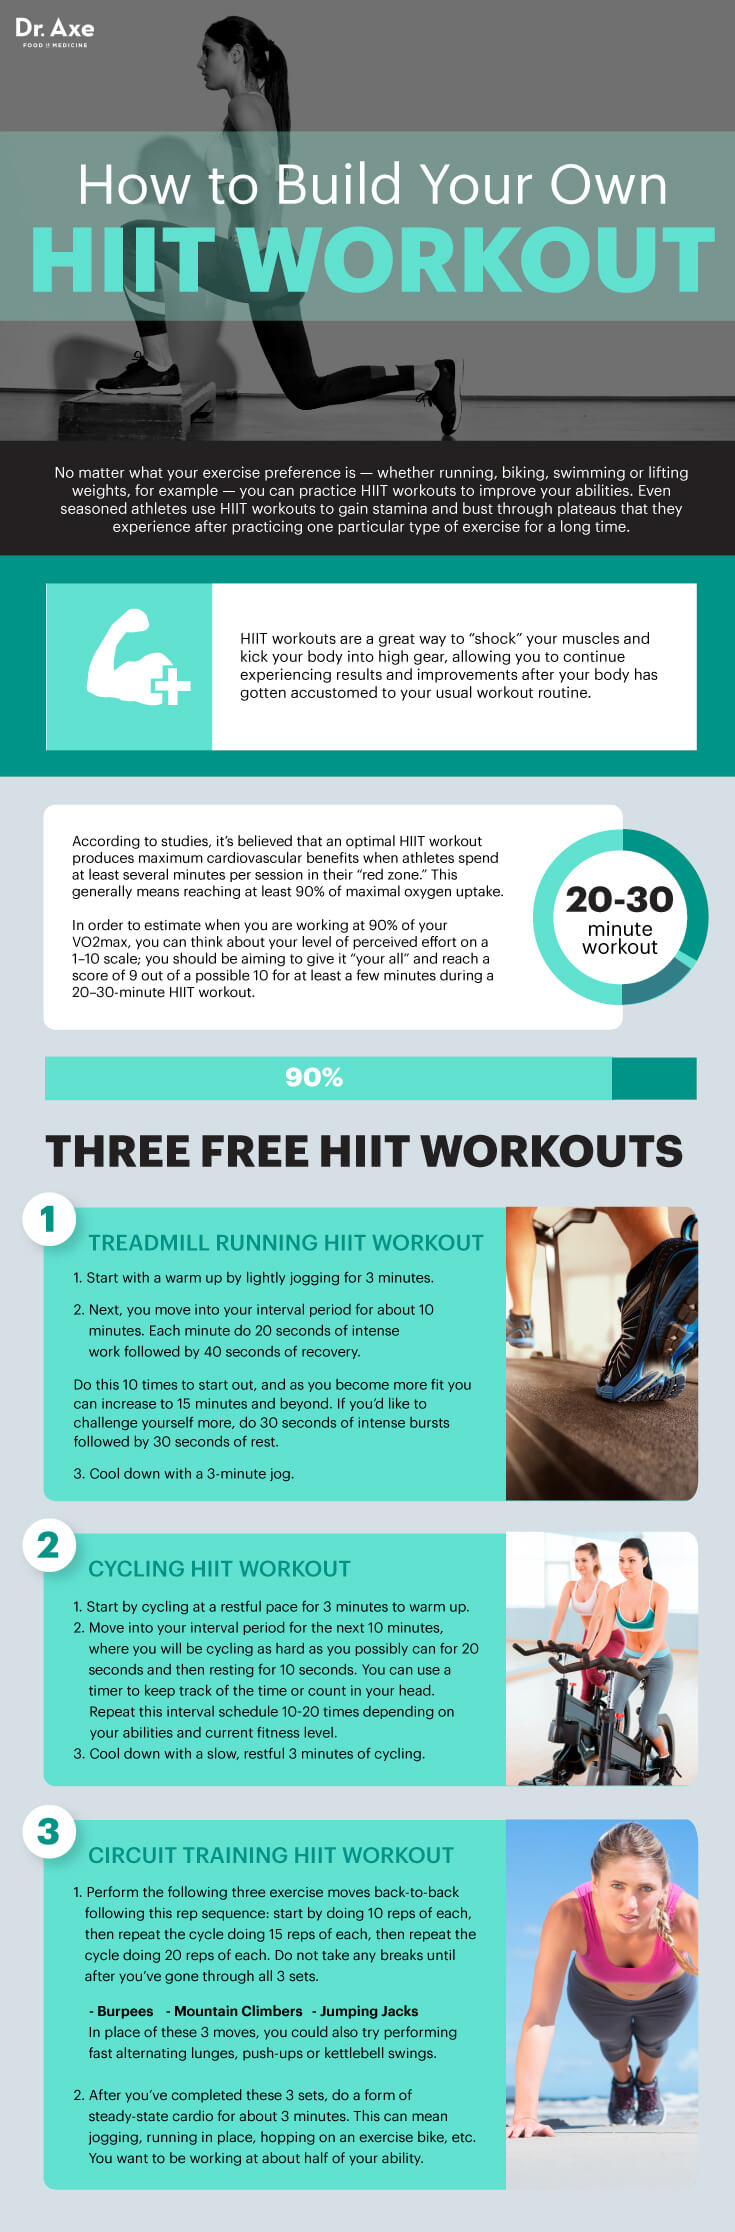 How to do a HIIT workout